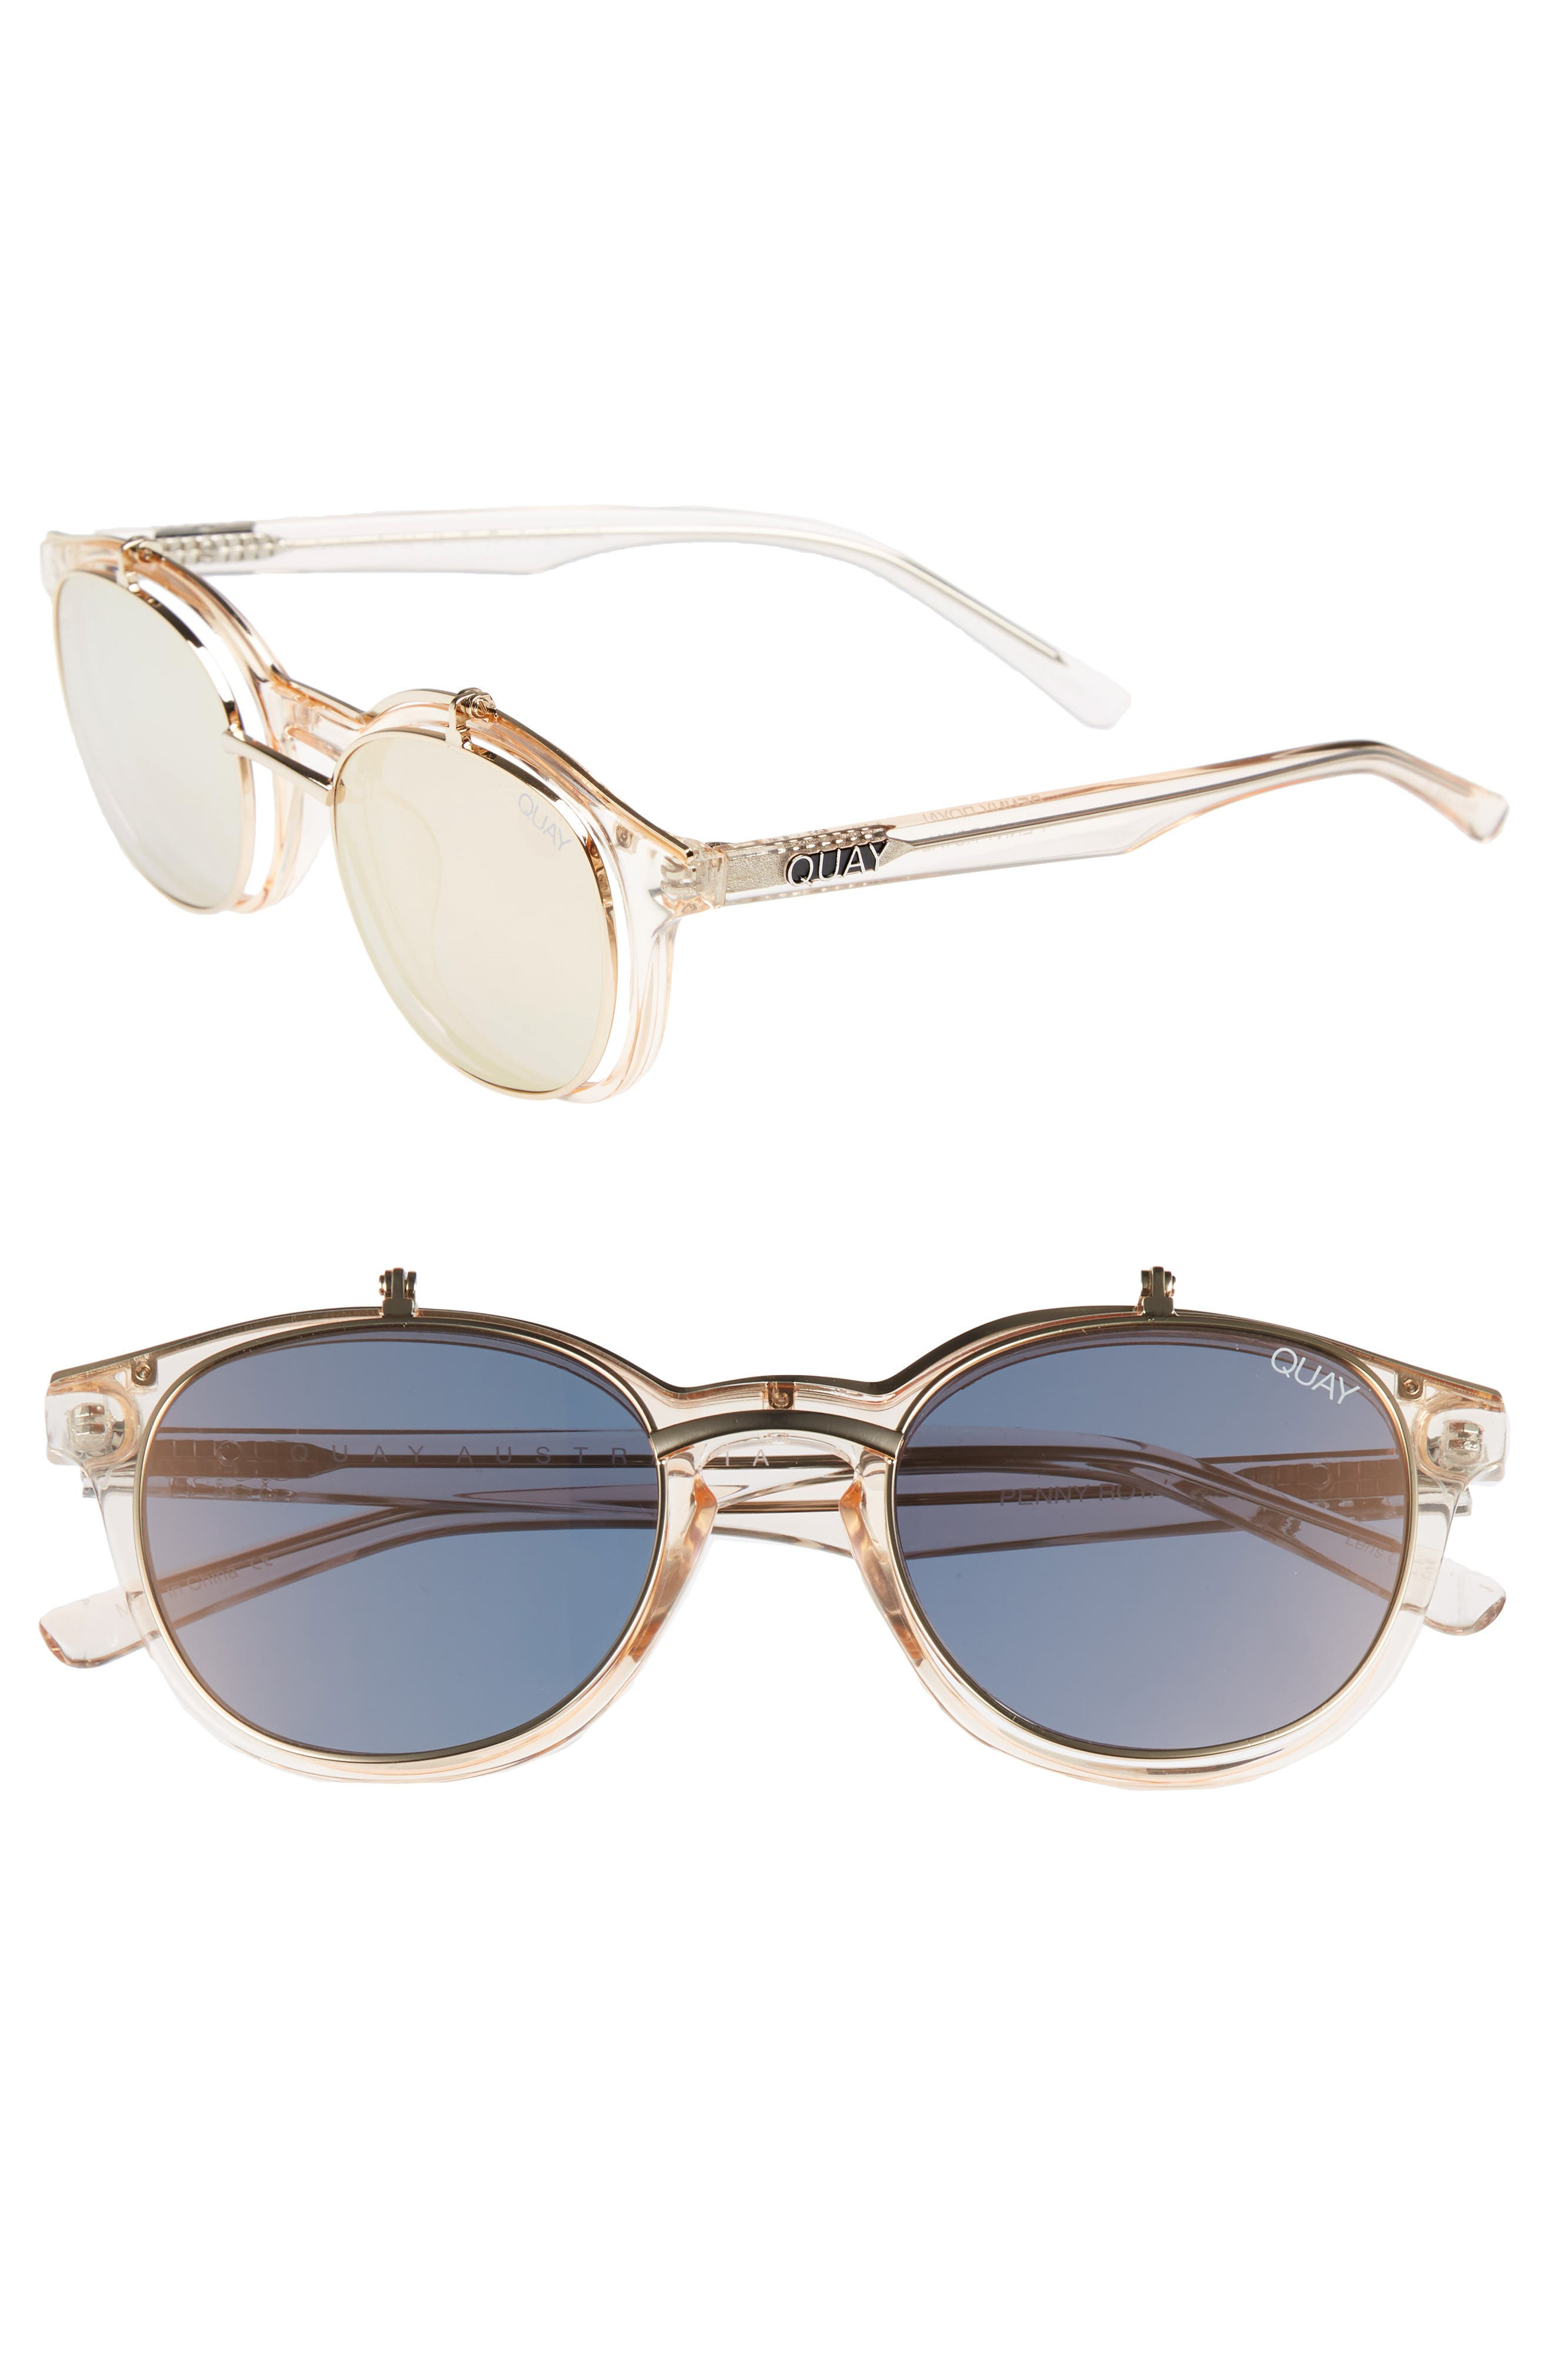 Penny Royal 55mm Flip-Up Round Sunglasses,                             Main thumbnail 1, color,                             Champagne/ Gold